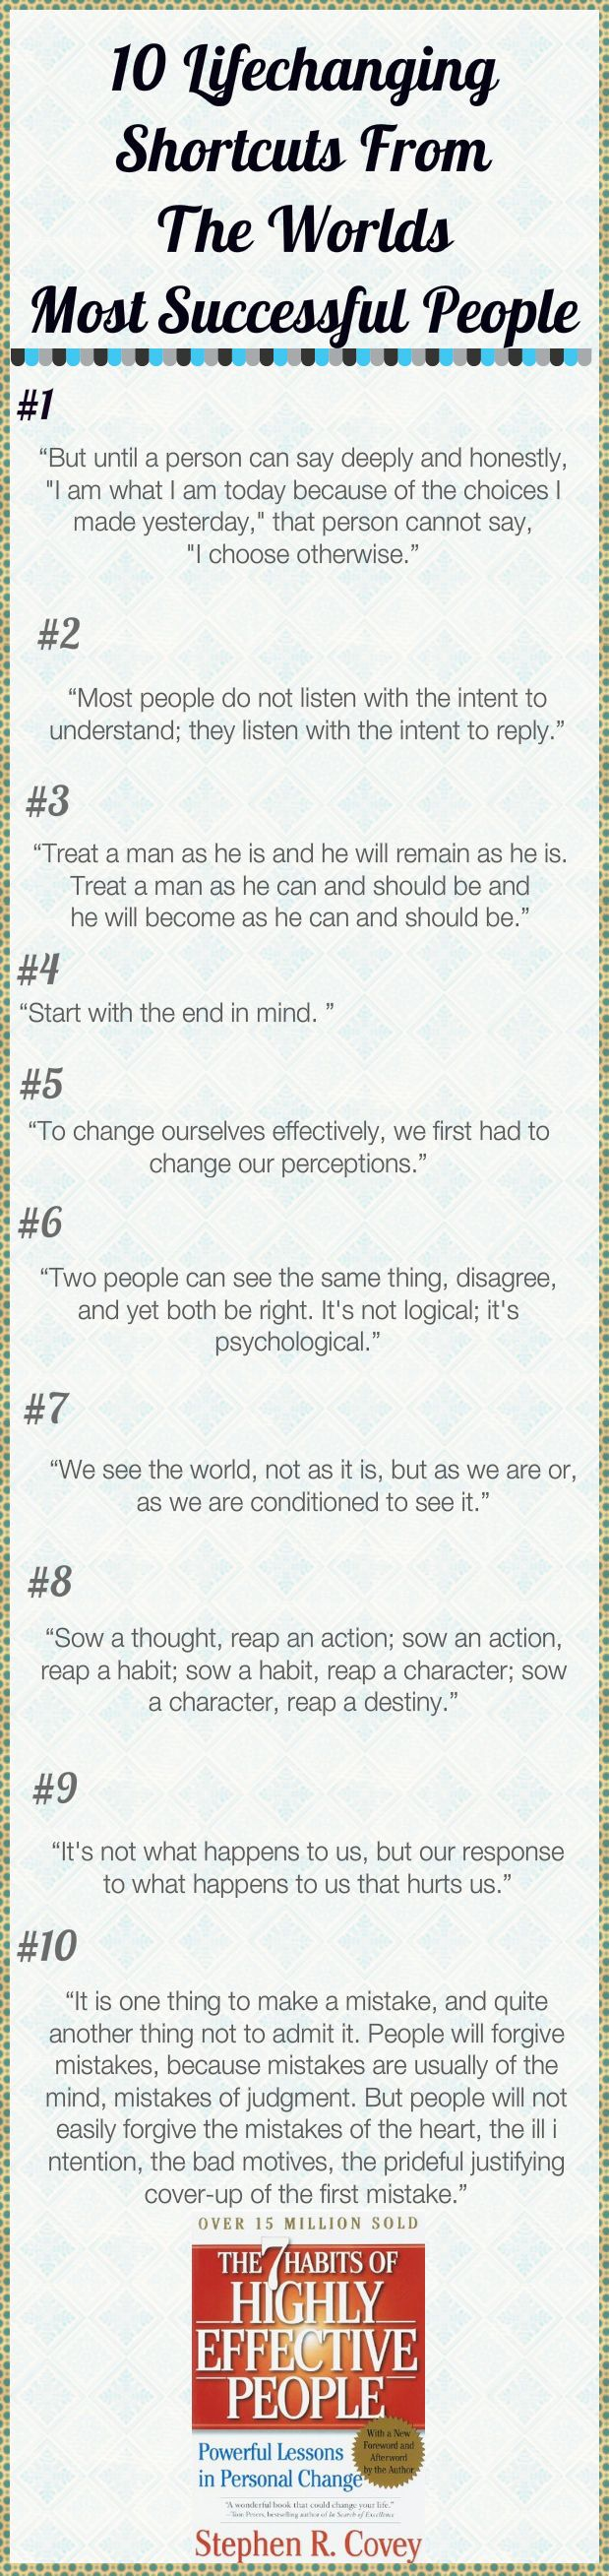 Daily Tips And Motivation   7 Habits Of Highly Effective People by Stephen R. Covey